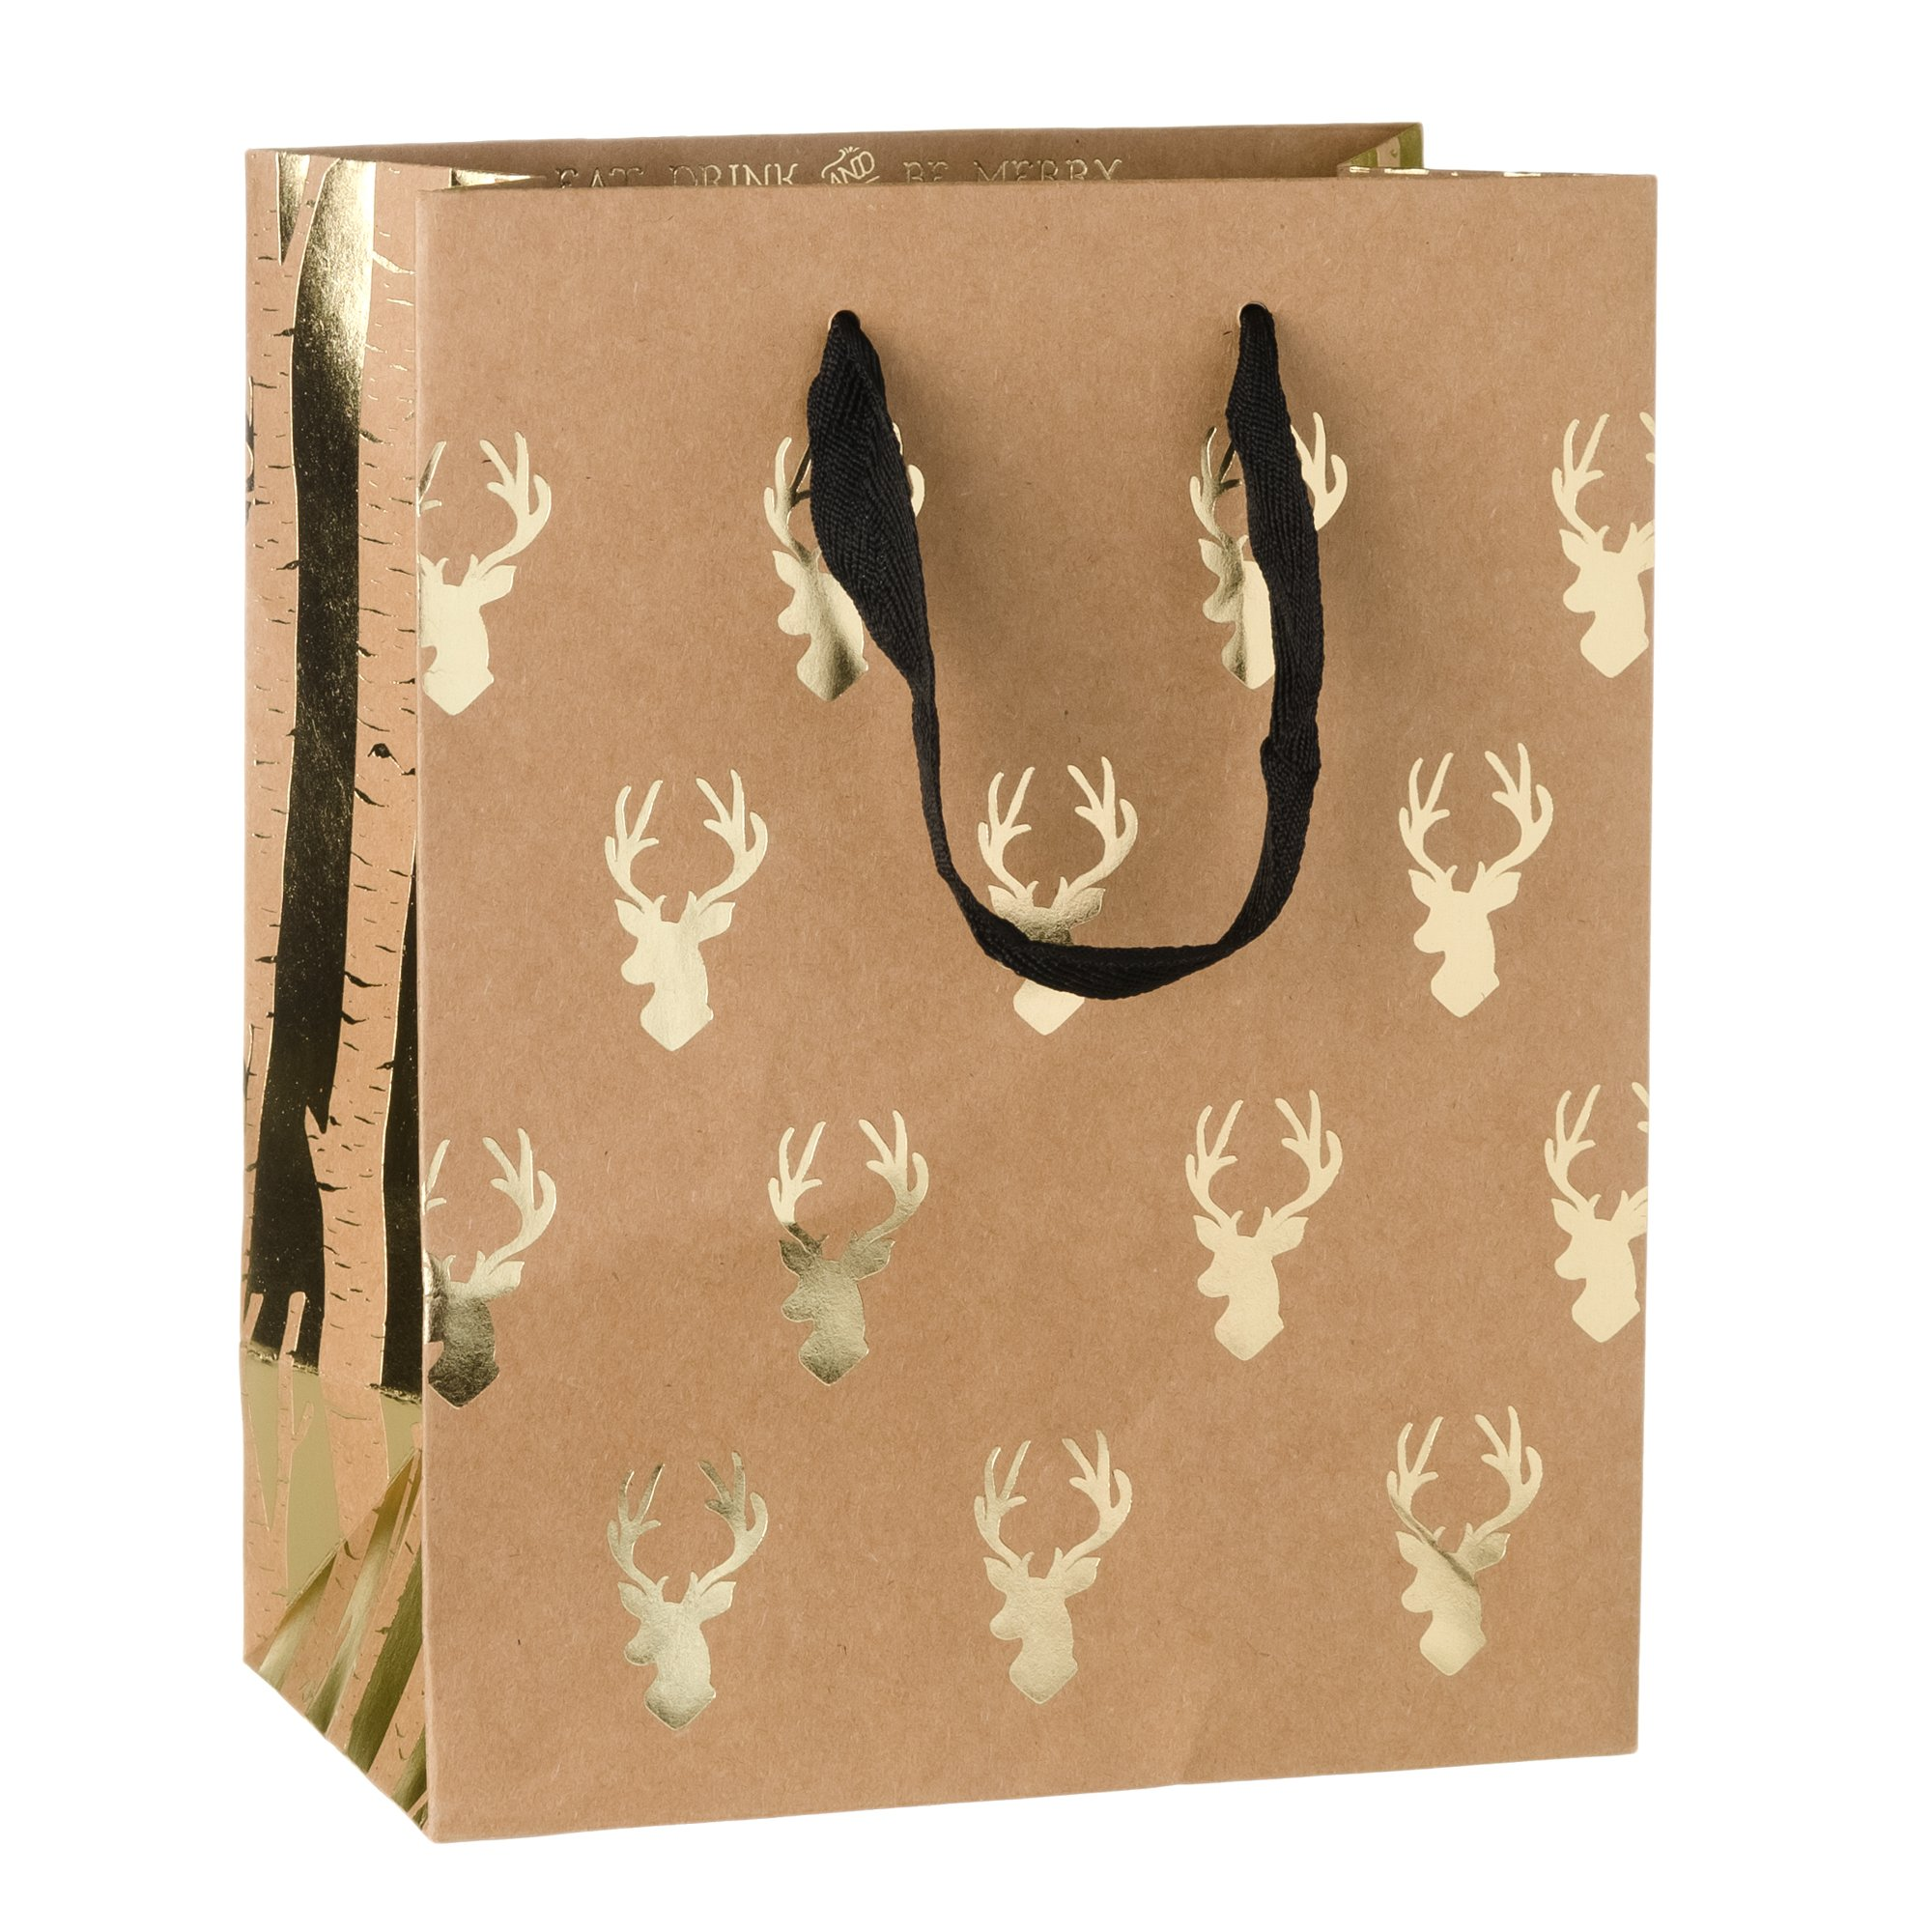 Creative Bag, Holiday Paper Shopping Bags, 8x4.5x10'', Kraftology - Gold Reindeer Birch, 100ct, Merchandise, Retail, Party, Boutique, Gift, Bulk, Notion, Christmas, Holiday